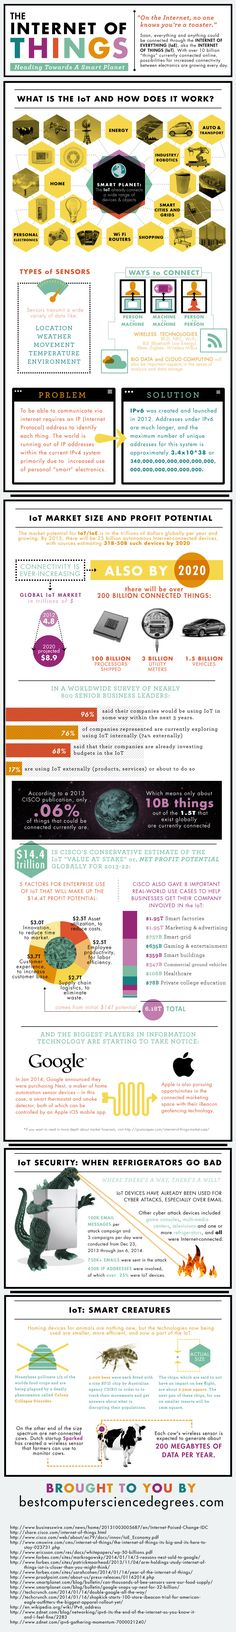 The Internet of EveryThing: Heading Towards A Smarter Planet - infographic